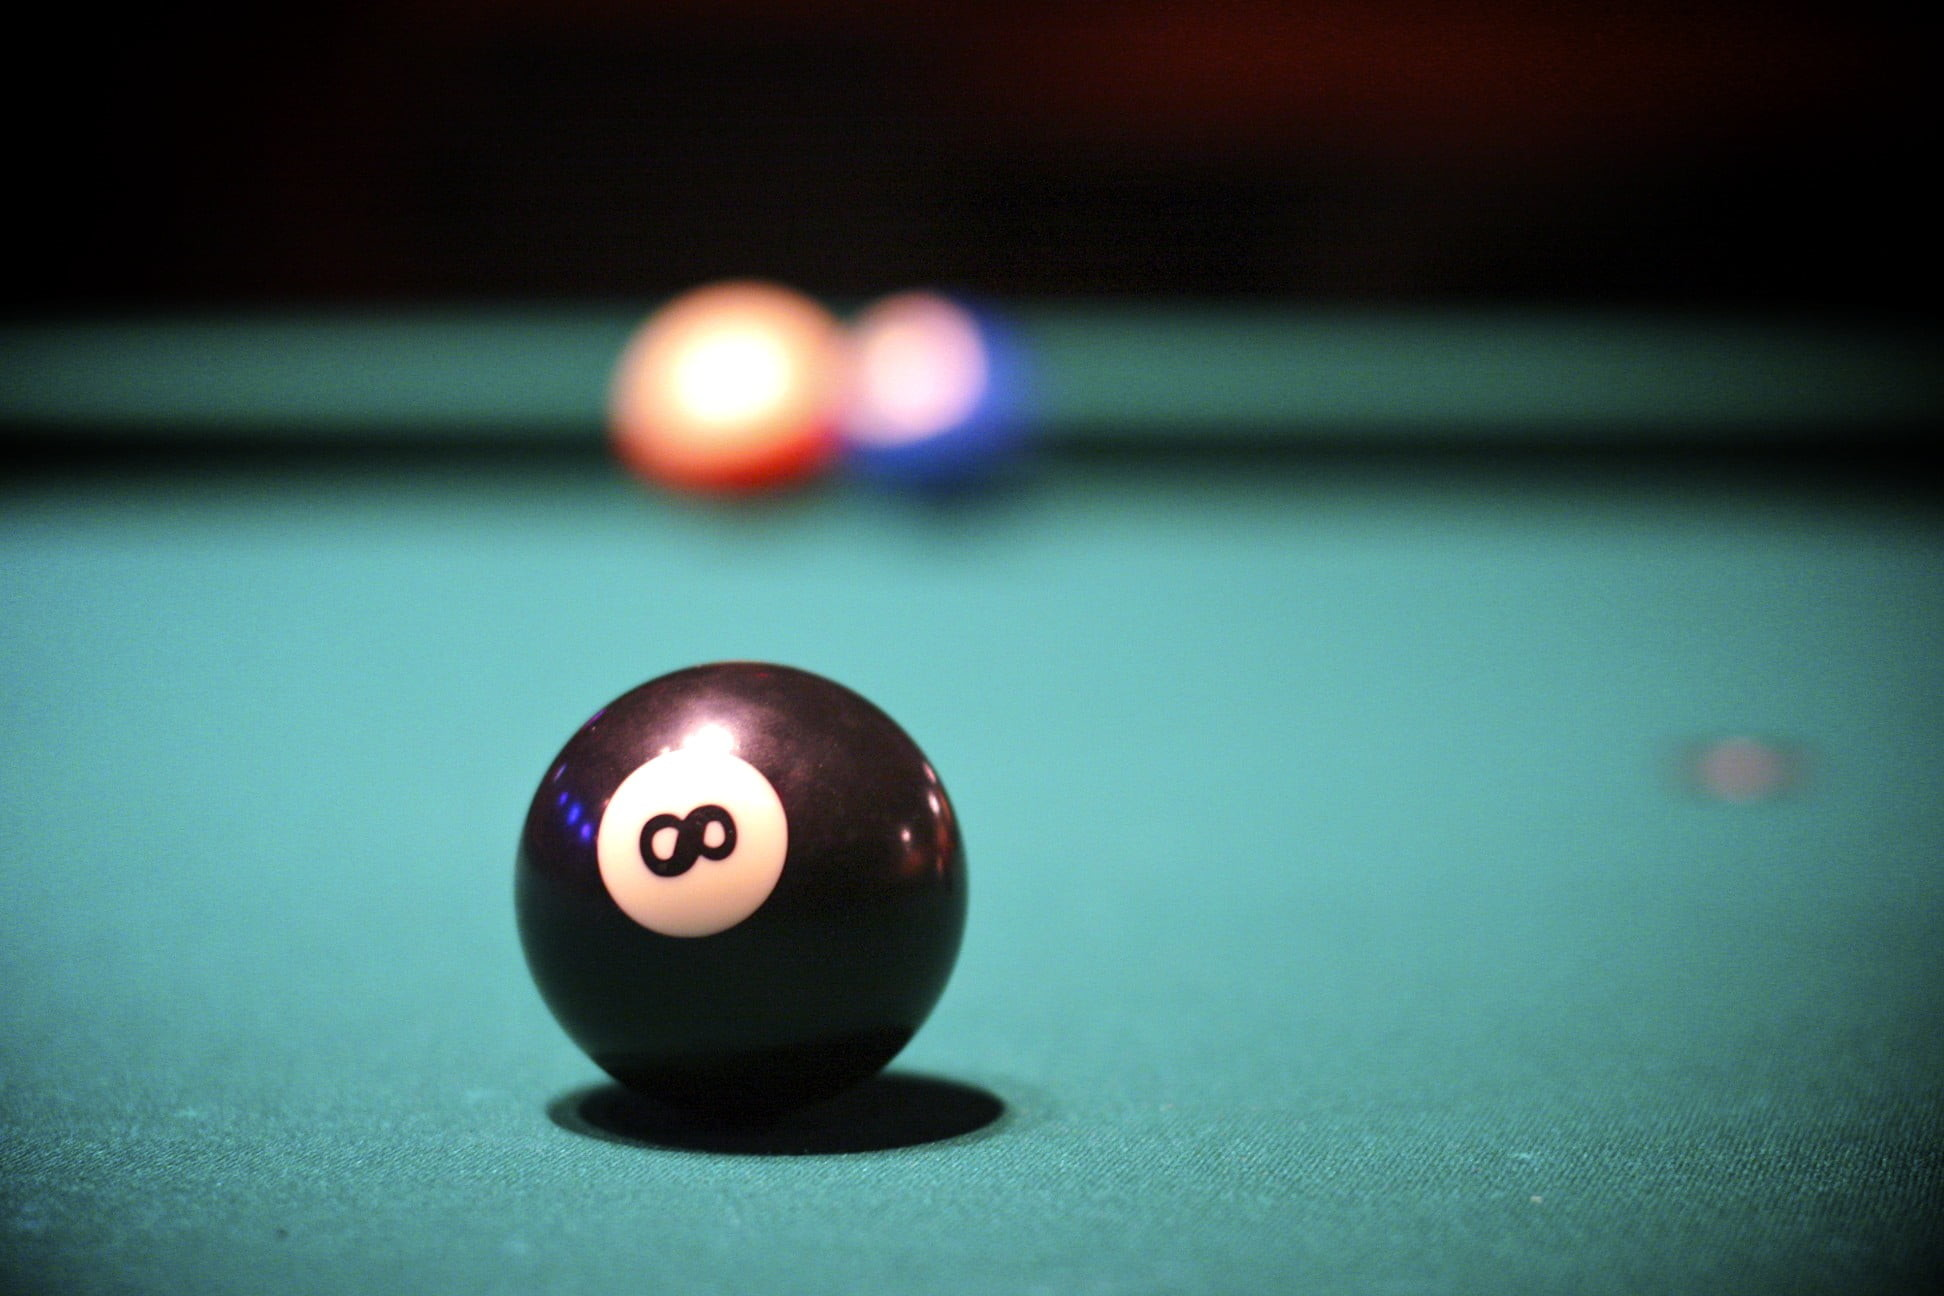 1944x1296 selective focus photography of 8 billiard ball on table HD wallpaper